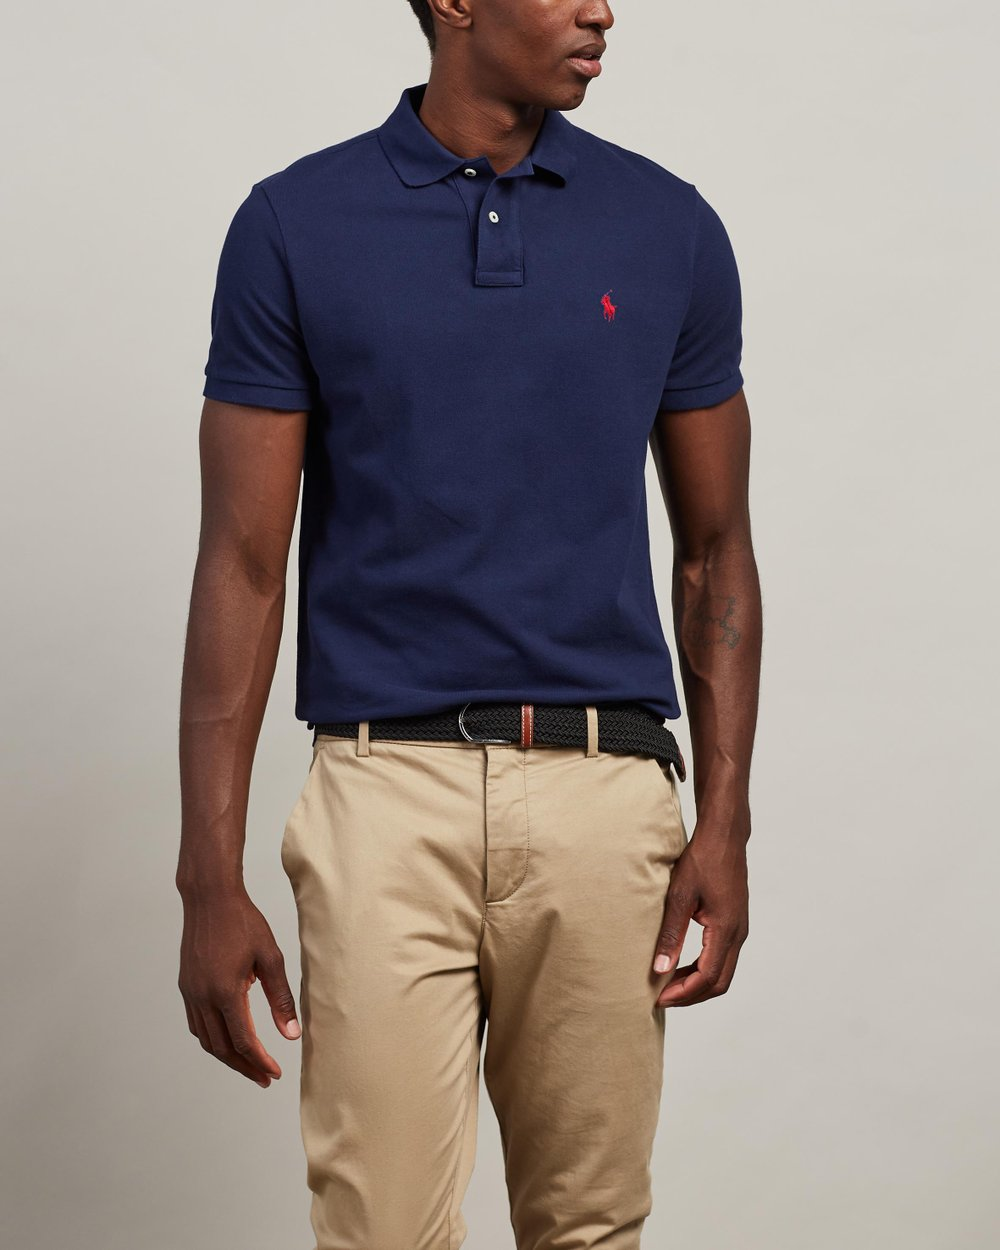 95890f8535e8 Basic Mesh Custom Slim Fit Polo by Polo Ralph Lauren Online